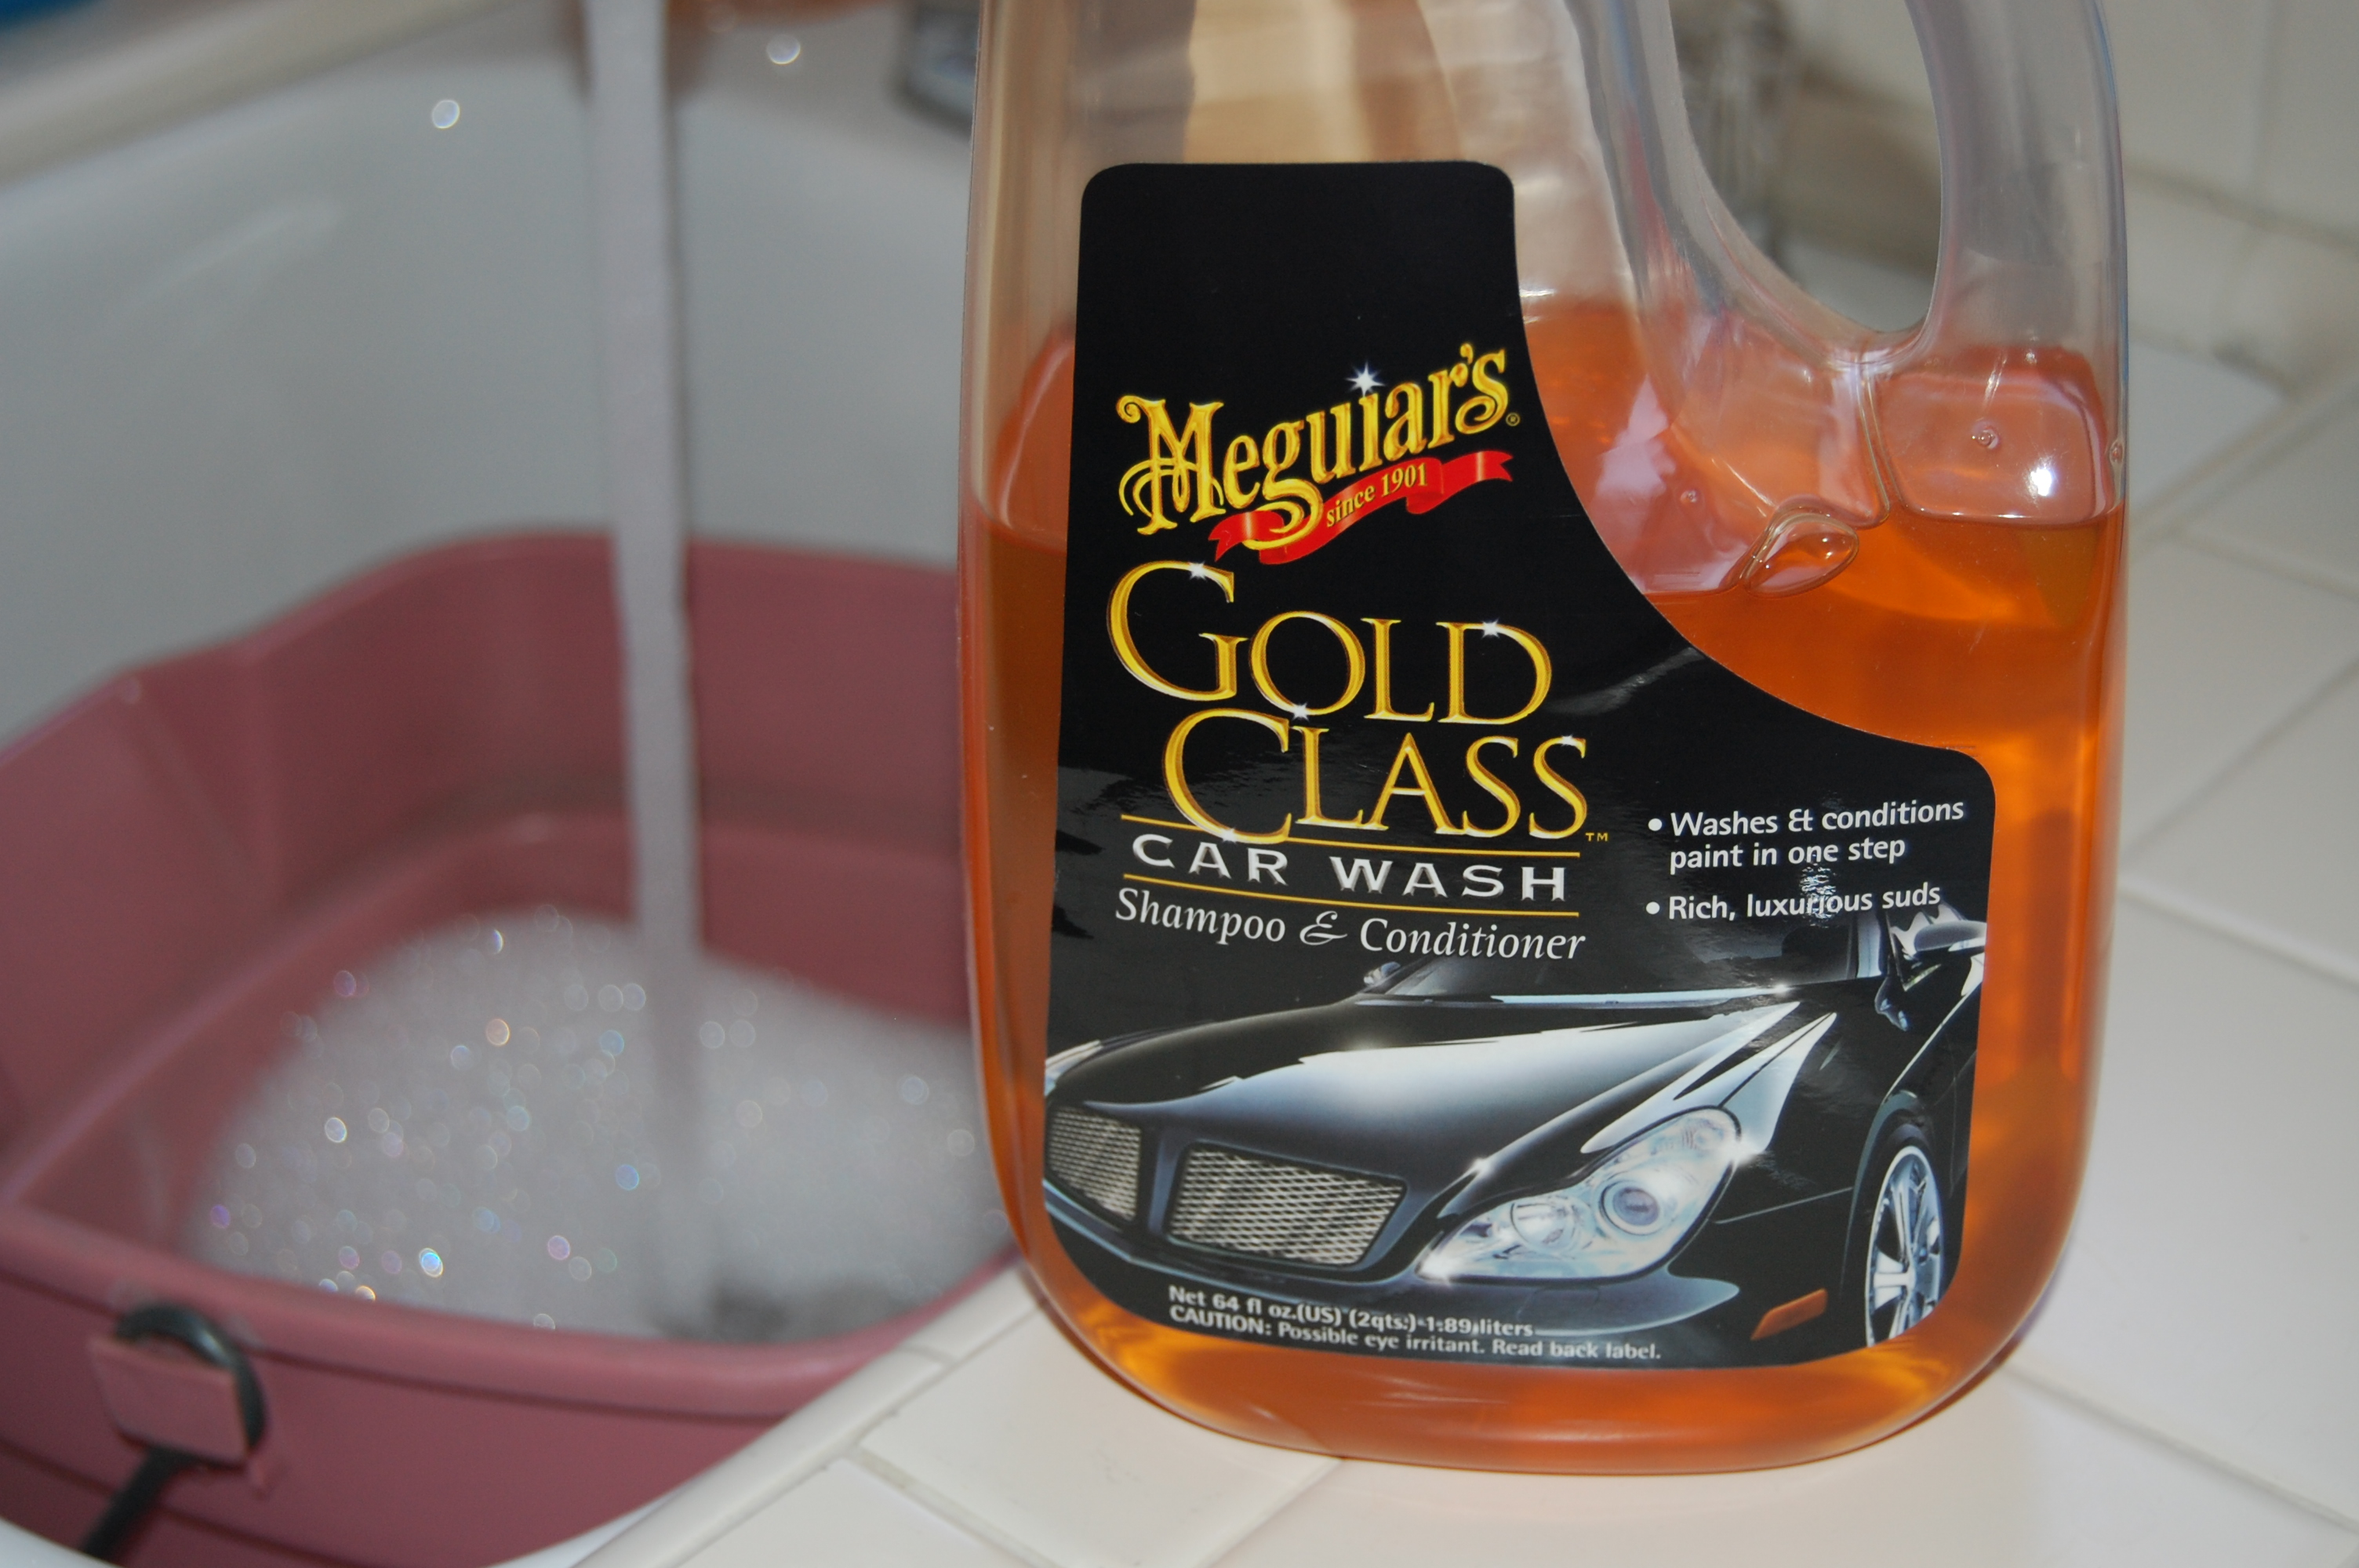 Meguiars_wash brand doesn't matter, just don't use detergent